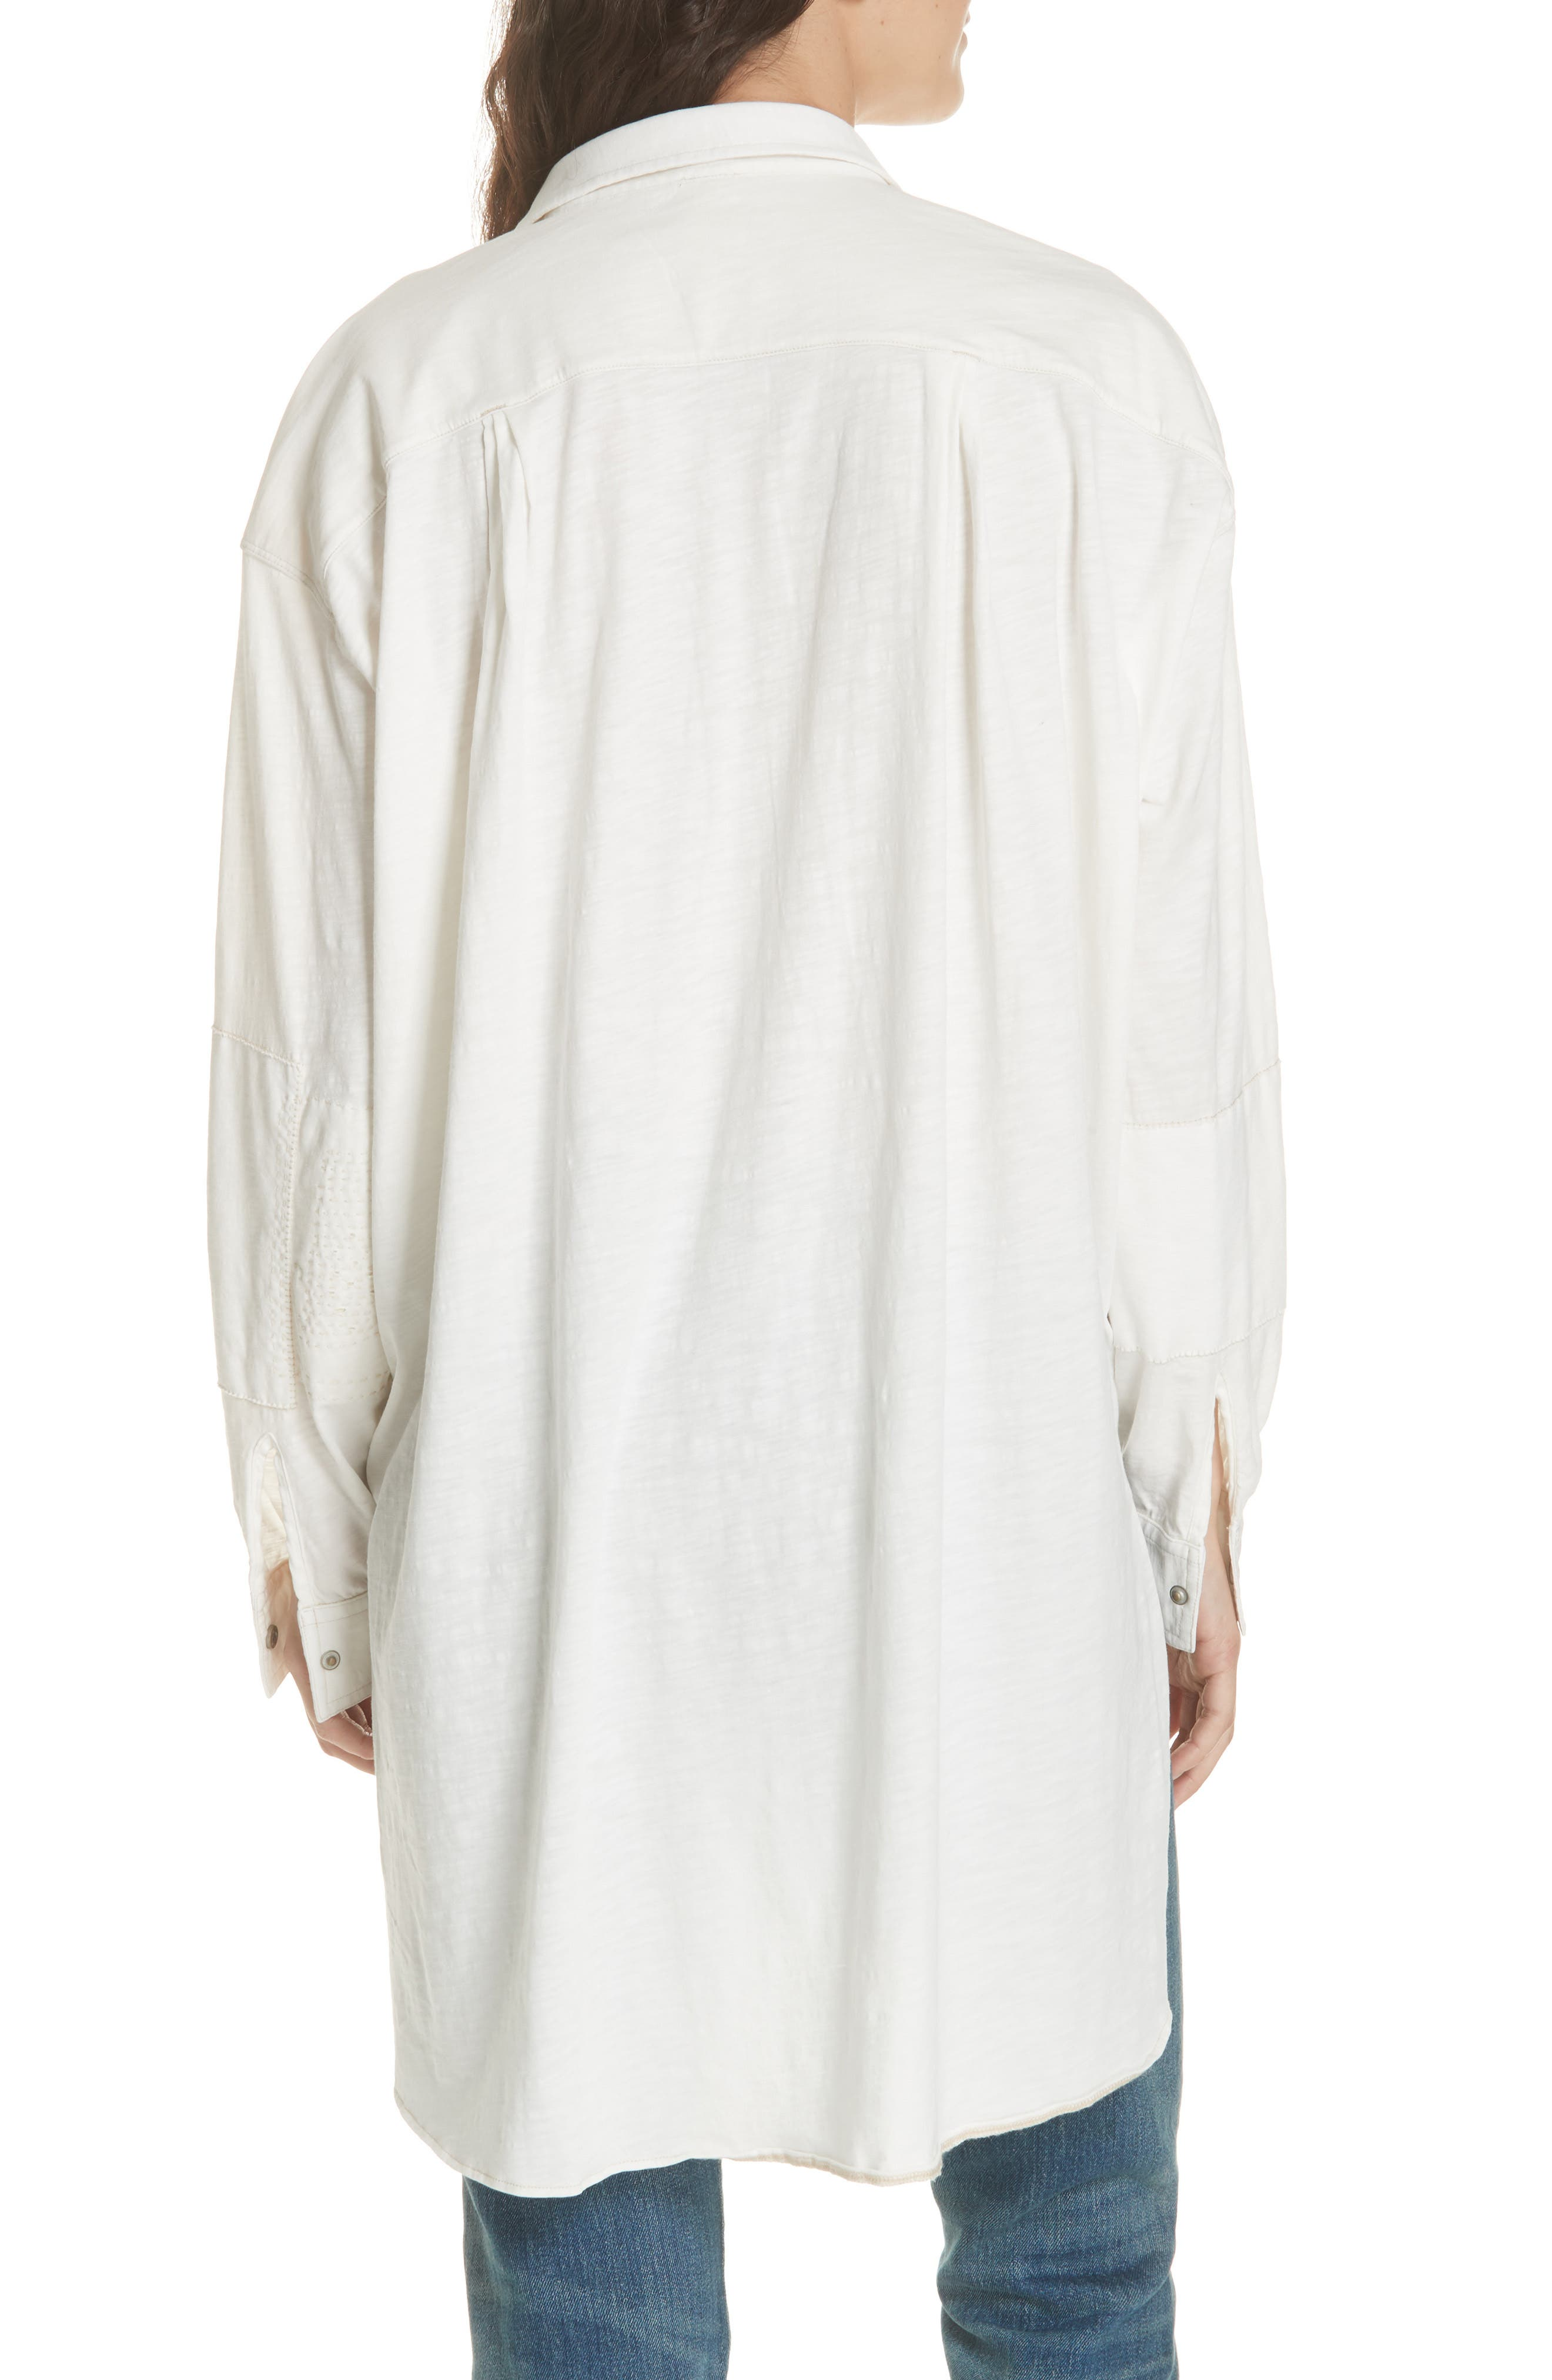 We the Free by Free People Love This Cotton Henley Top,                             Alternate thumbnail 2, color,                             103